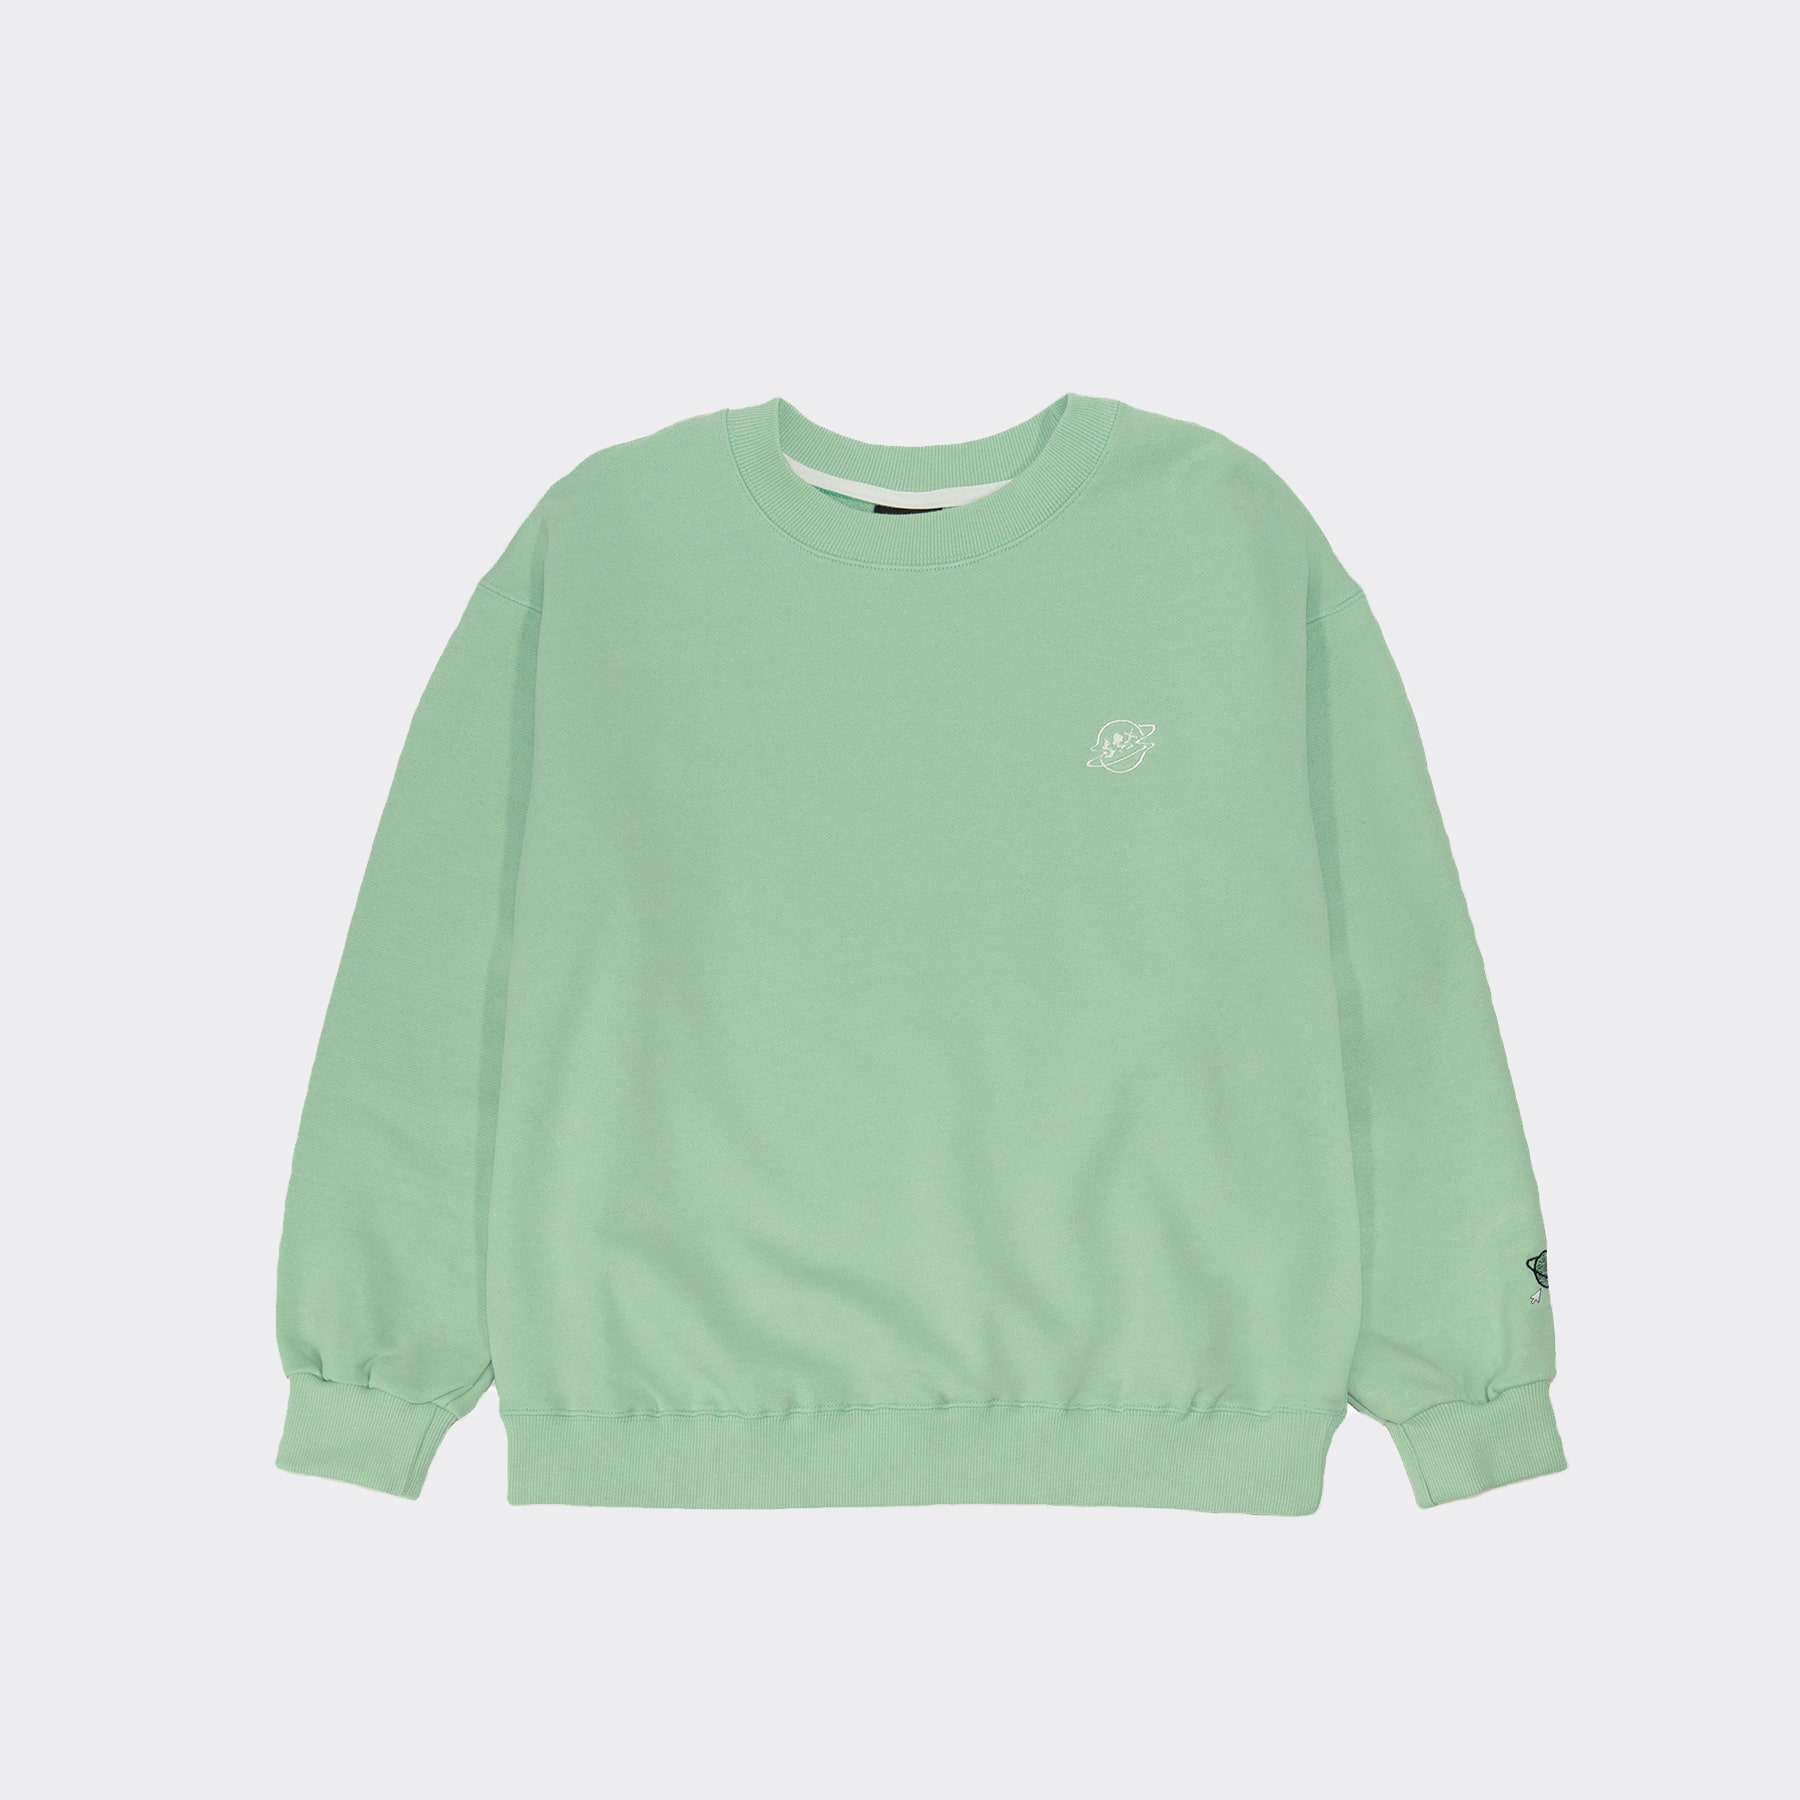 SONIC DASH sweatshirt(Oversize fit) Mint